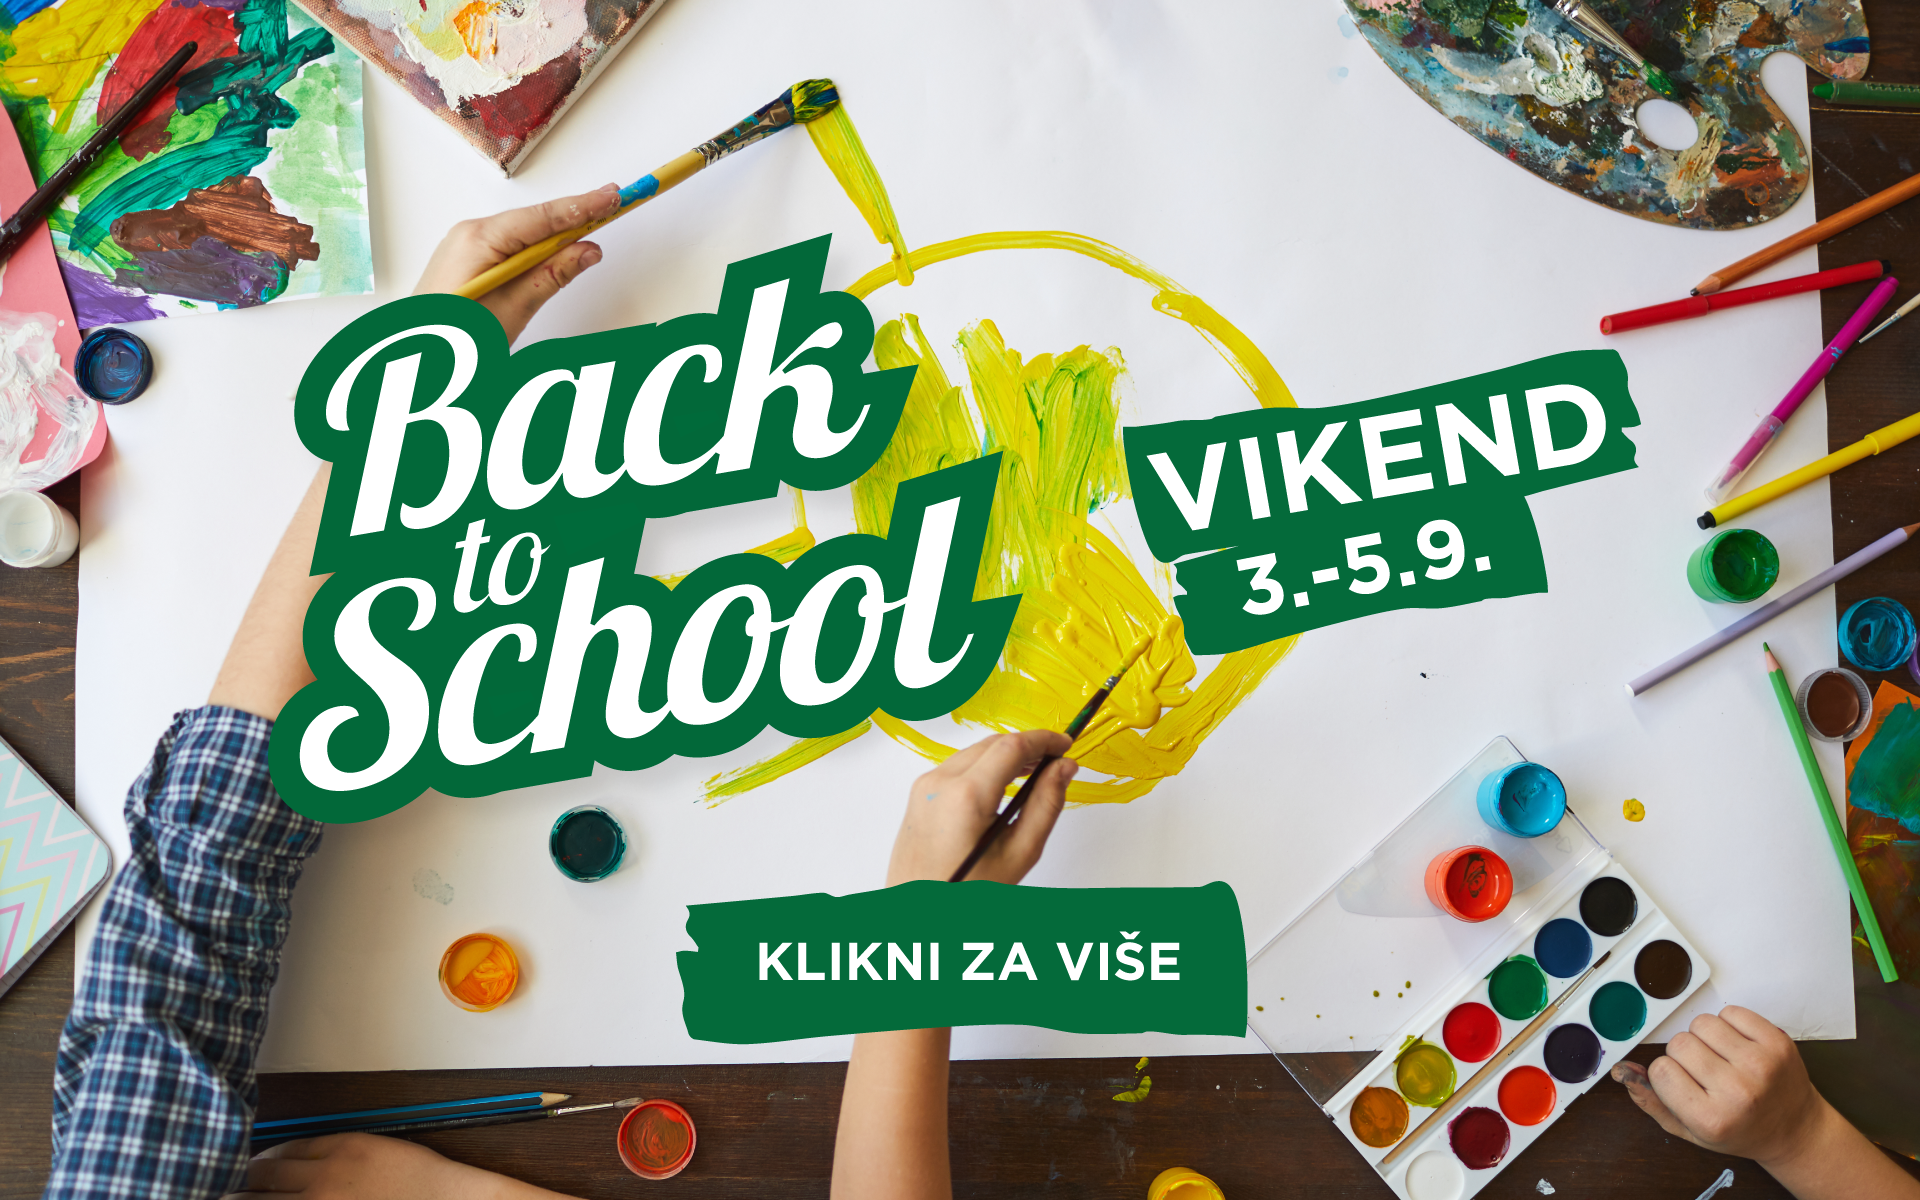 BACK TO SCHOOL VIKEND 3.-5.9.